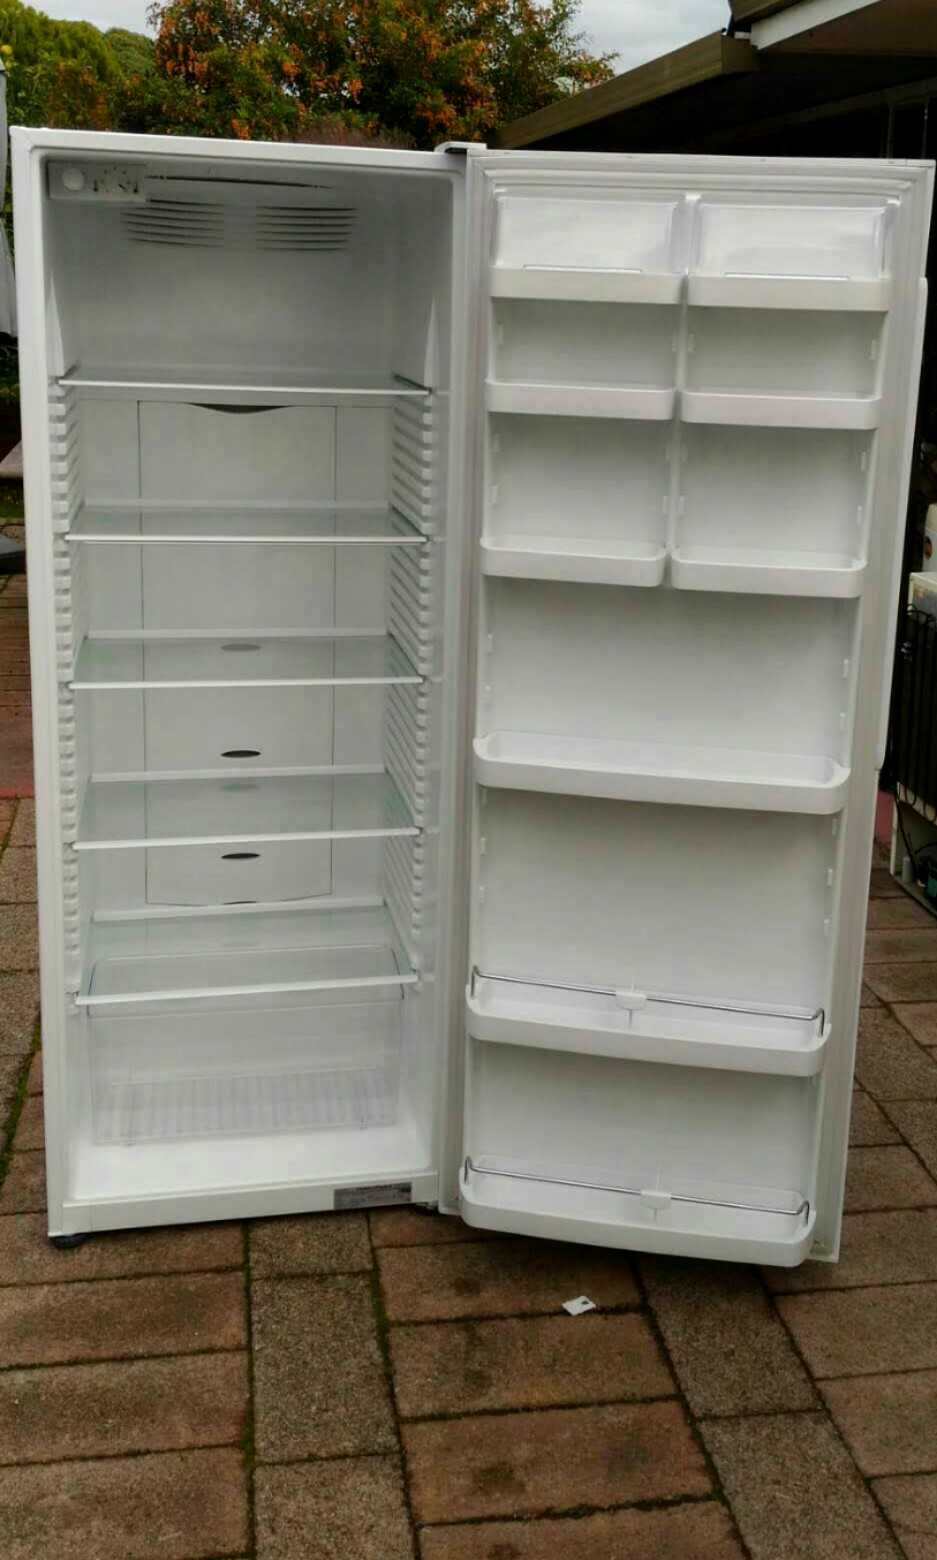 Fisher&Paykel Frost-Free Fridge(no freezer) 450 litres